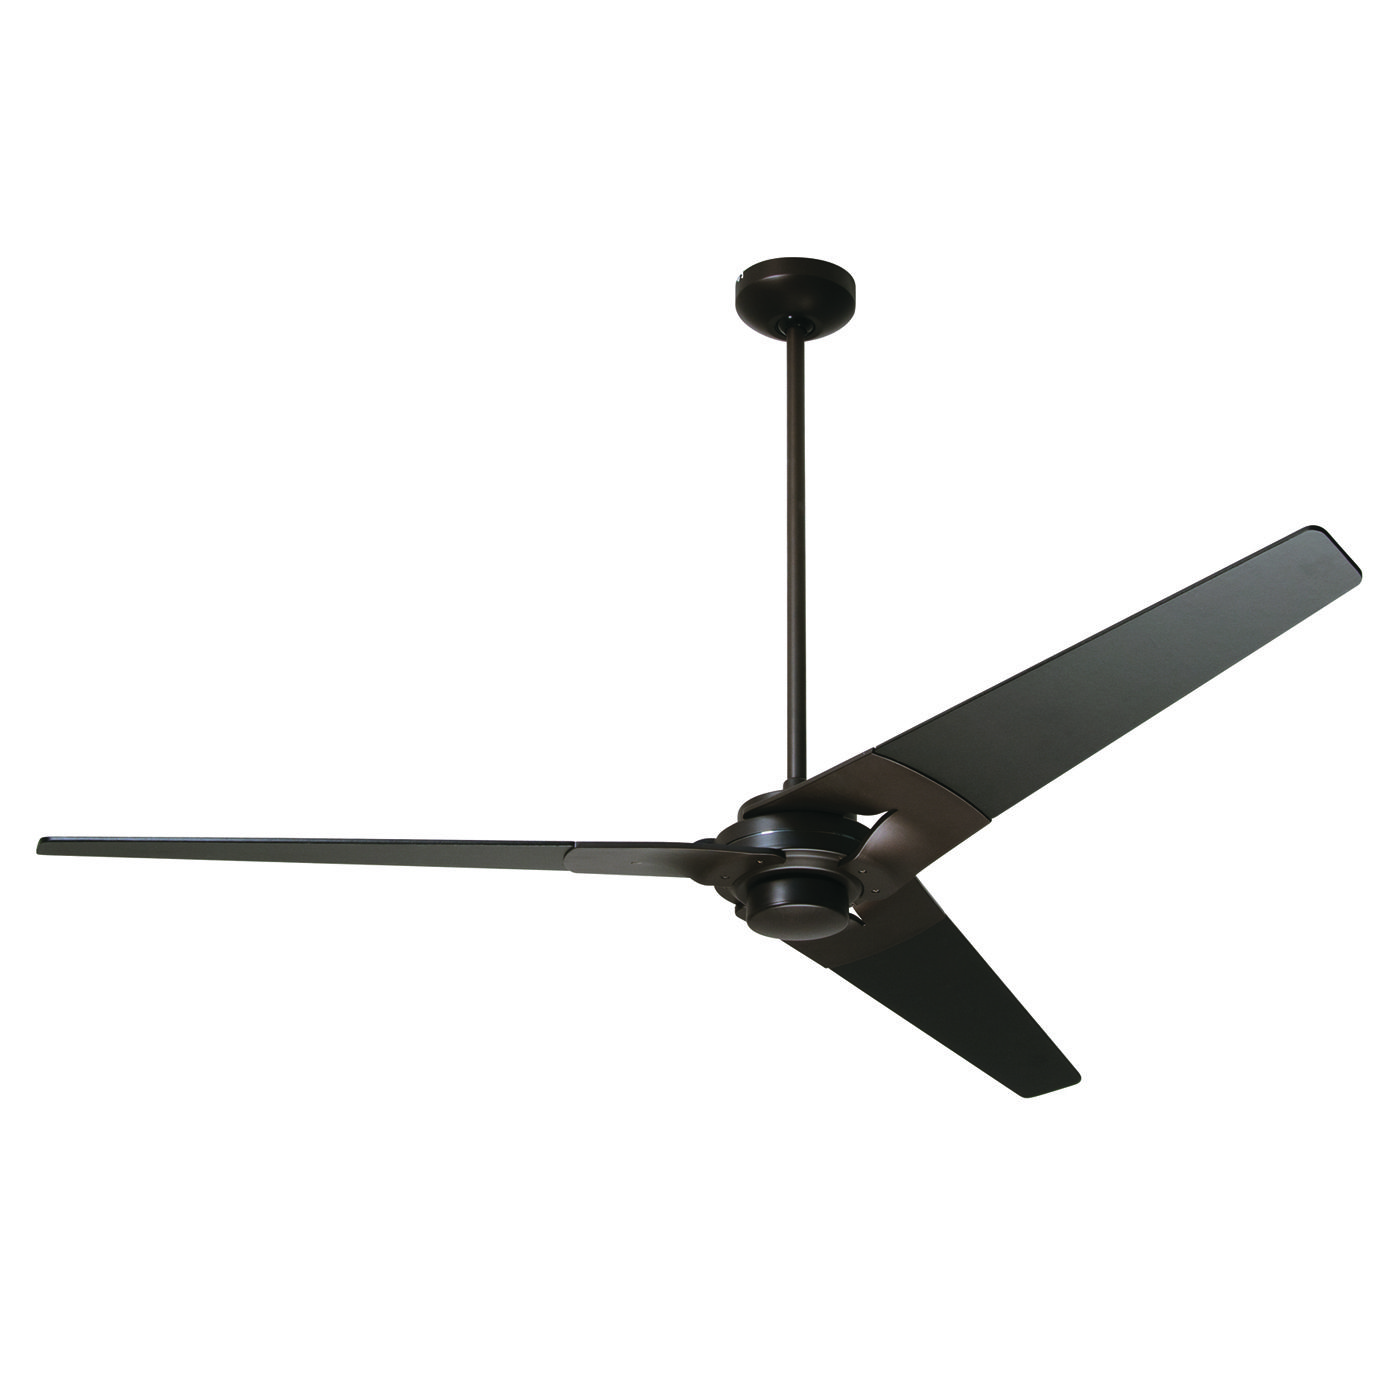 Shop Modern Fan Co TOR Torsion Ceiling Fan without Light at The